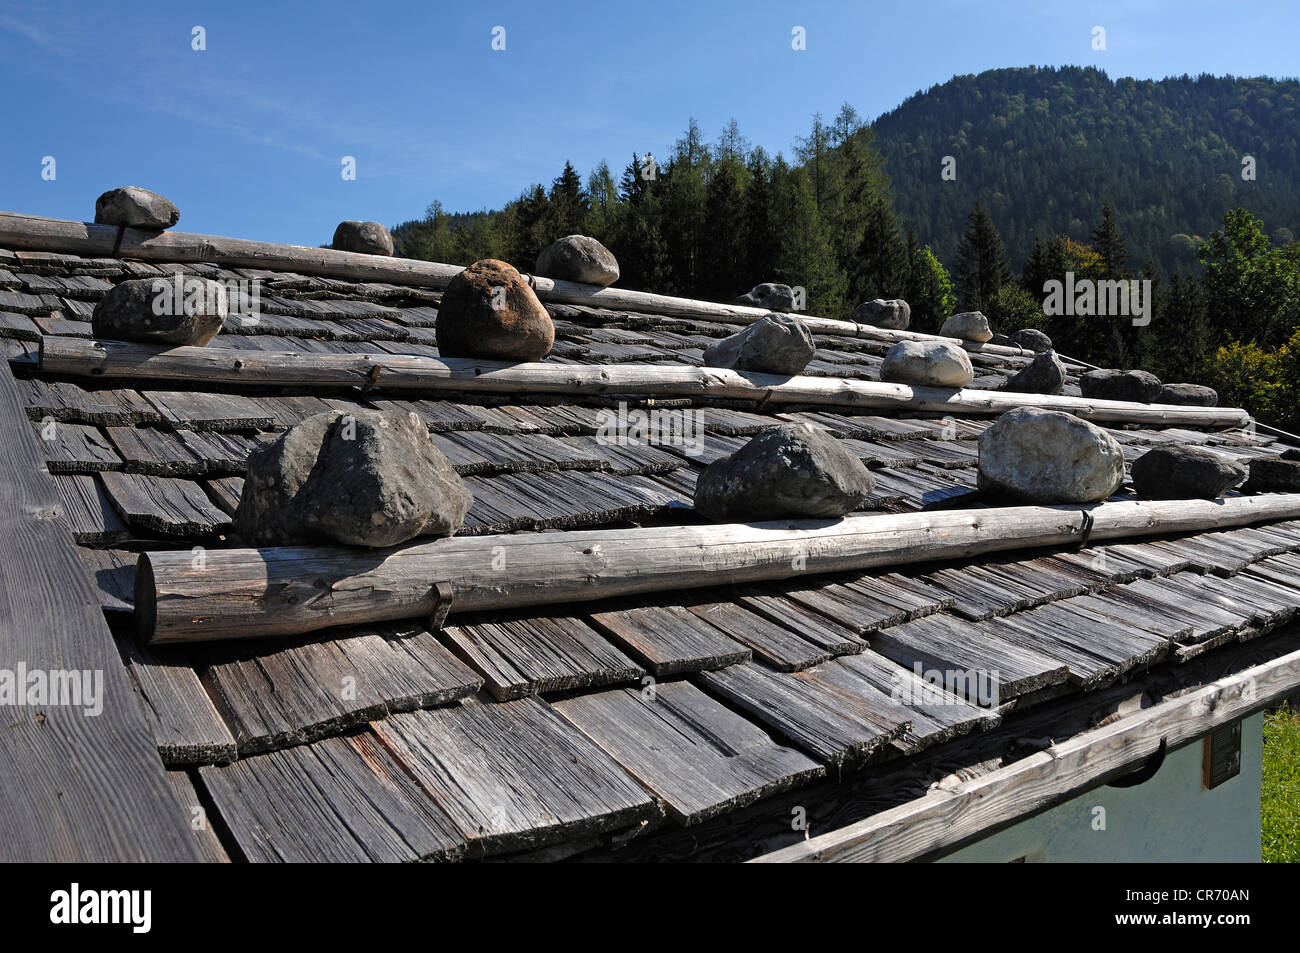 Shingle roof weighted with rocks, Ramsau, Upper Bavaria, Germany, Europe Stock Photo